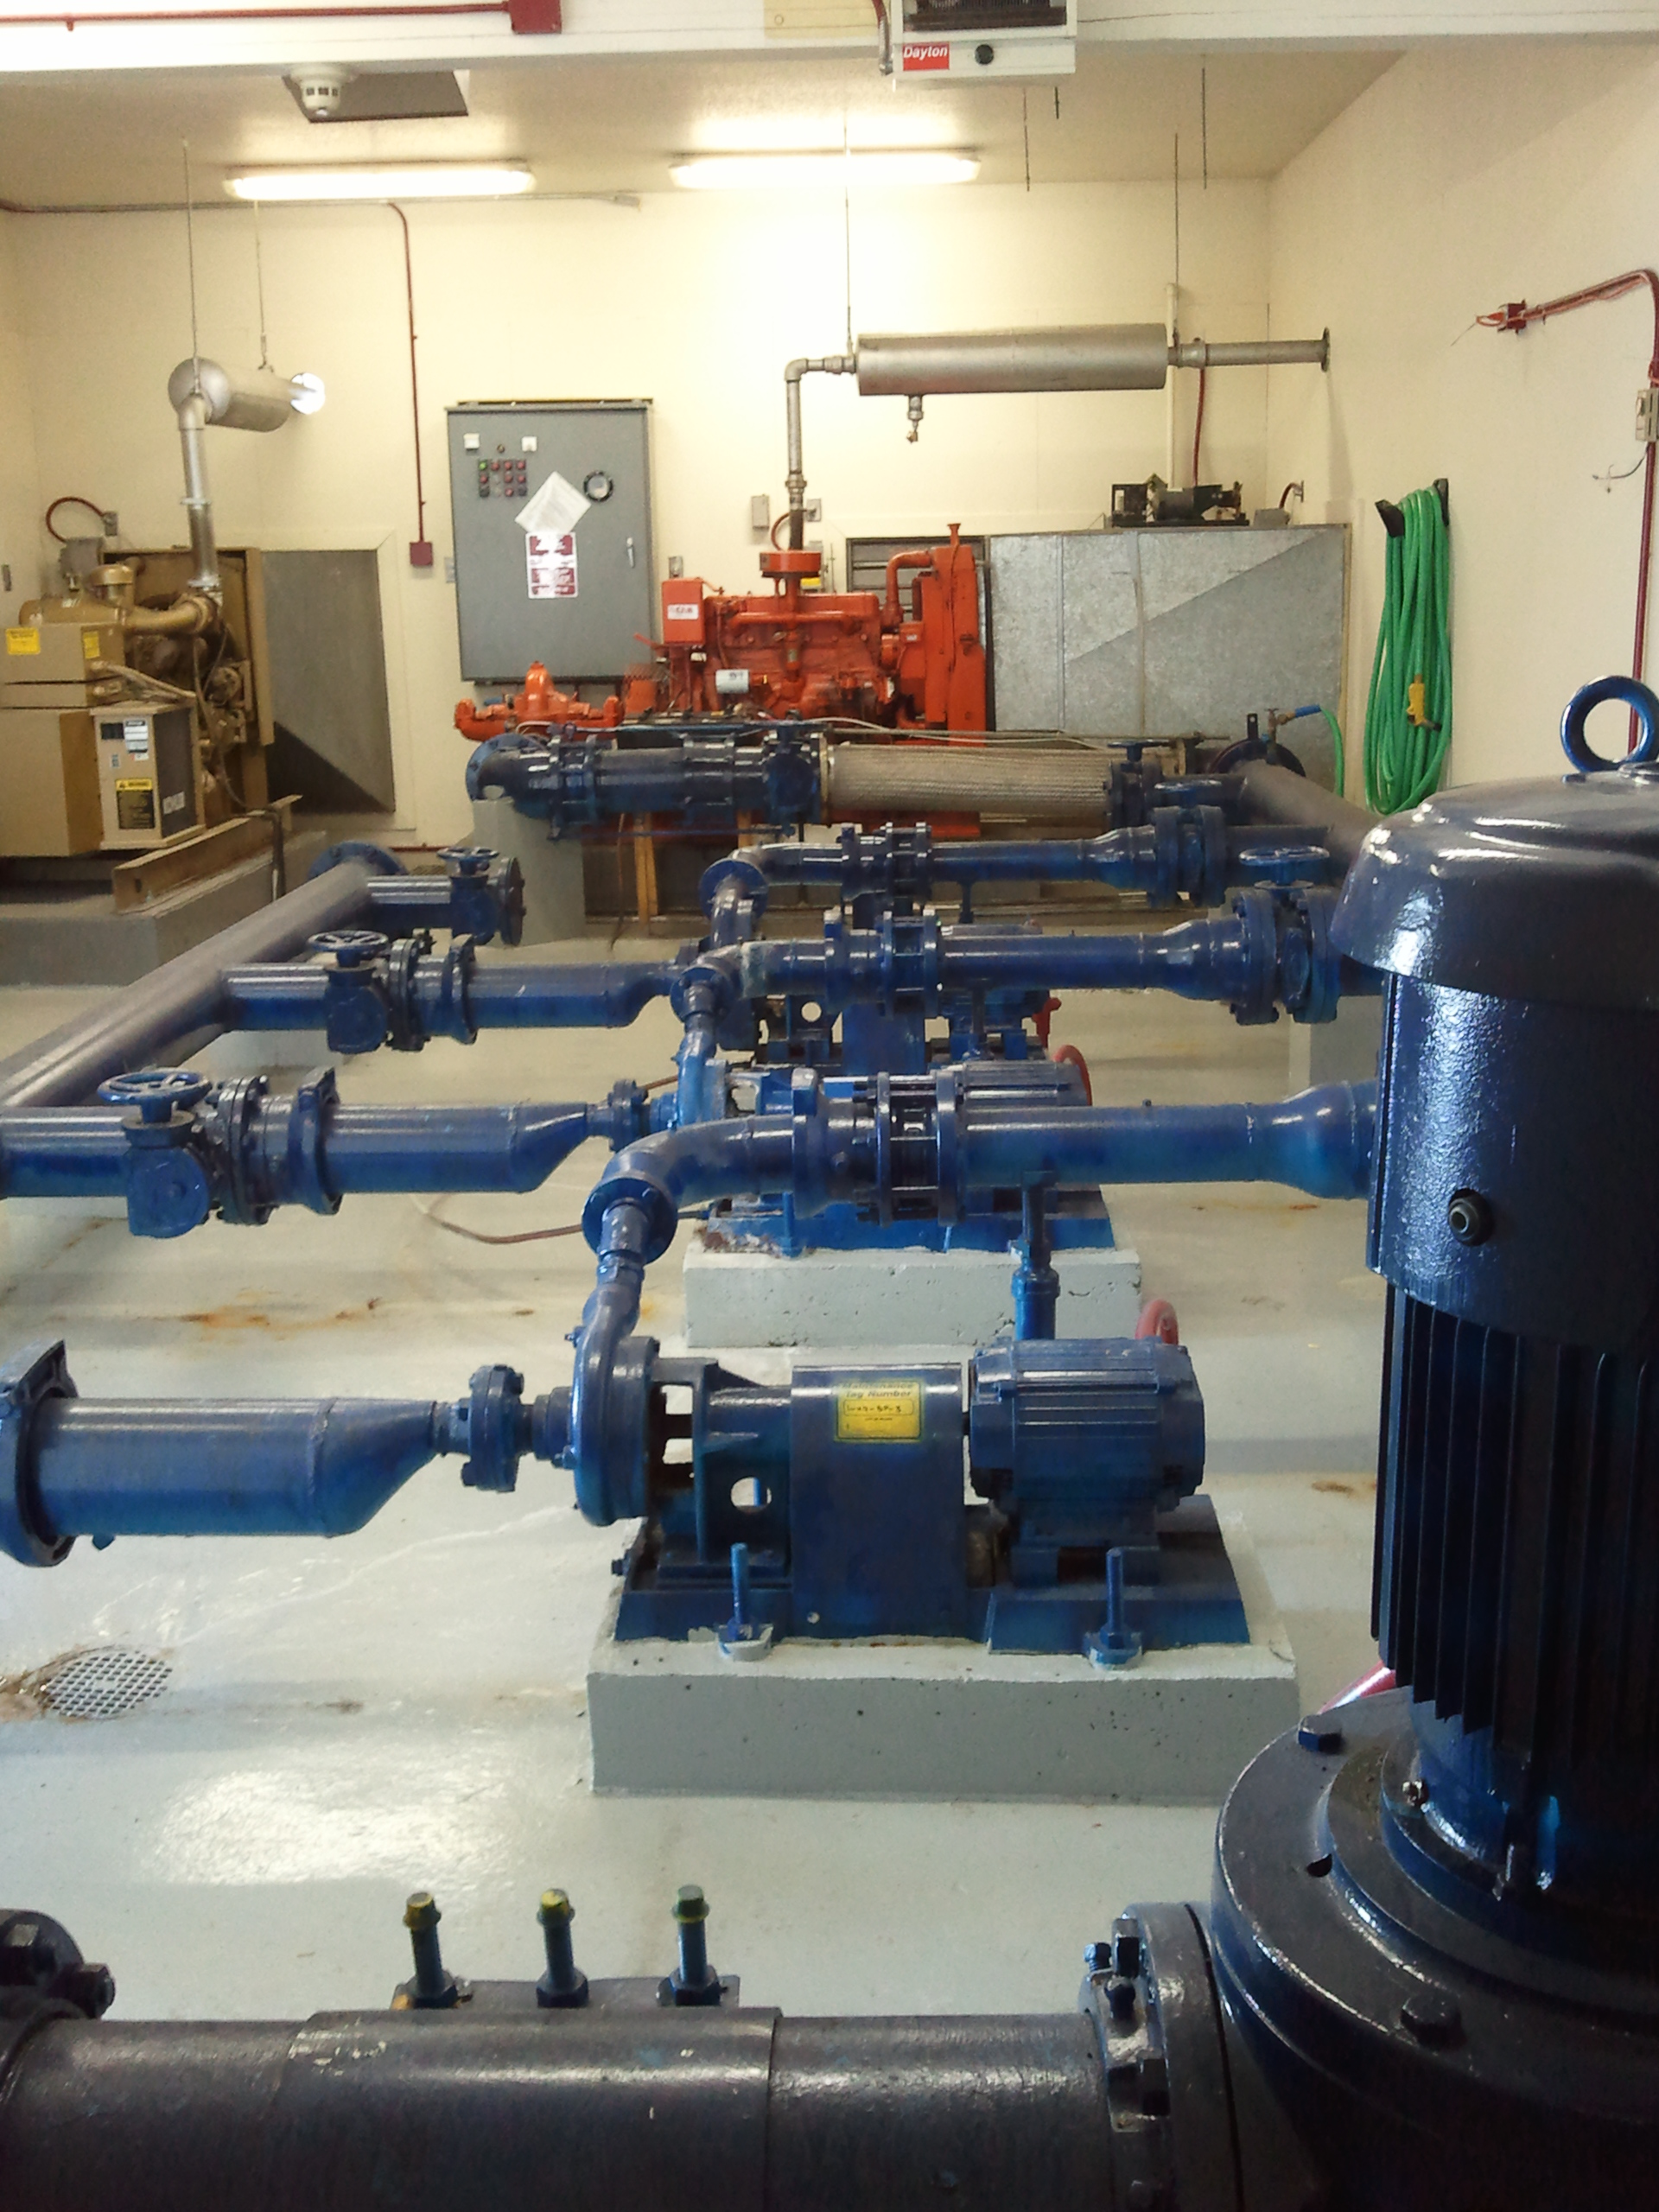 photo of a water pump and pressure pumps connected by blue pipes